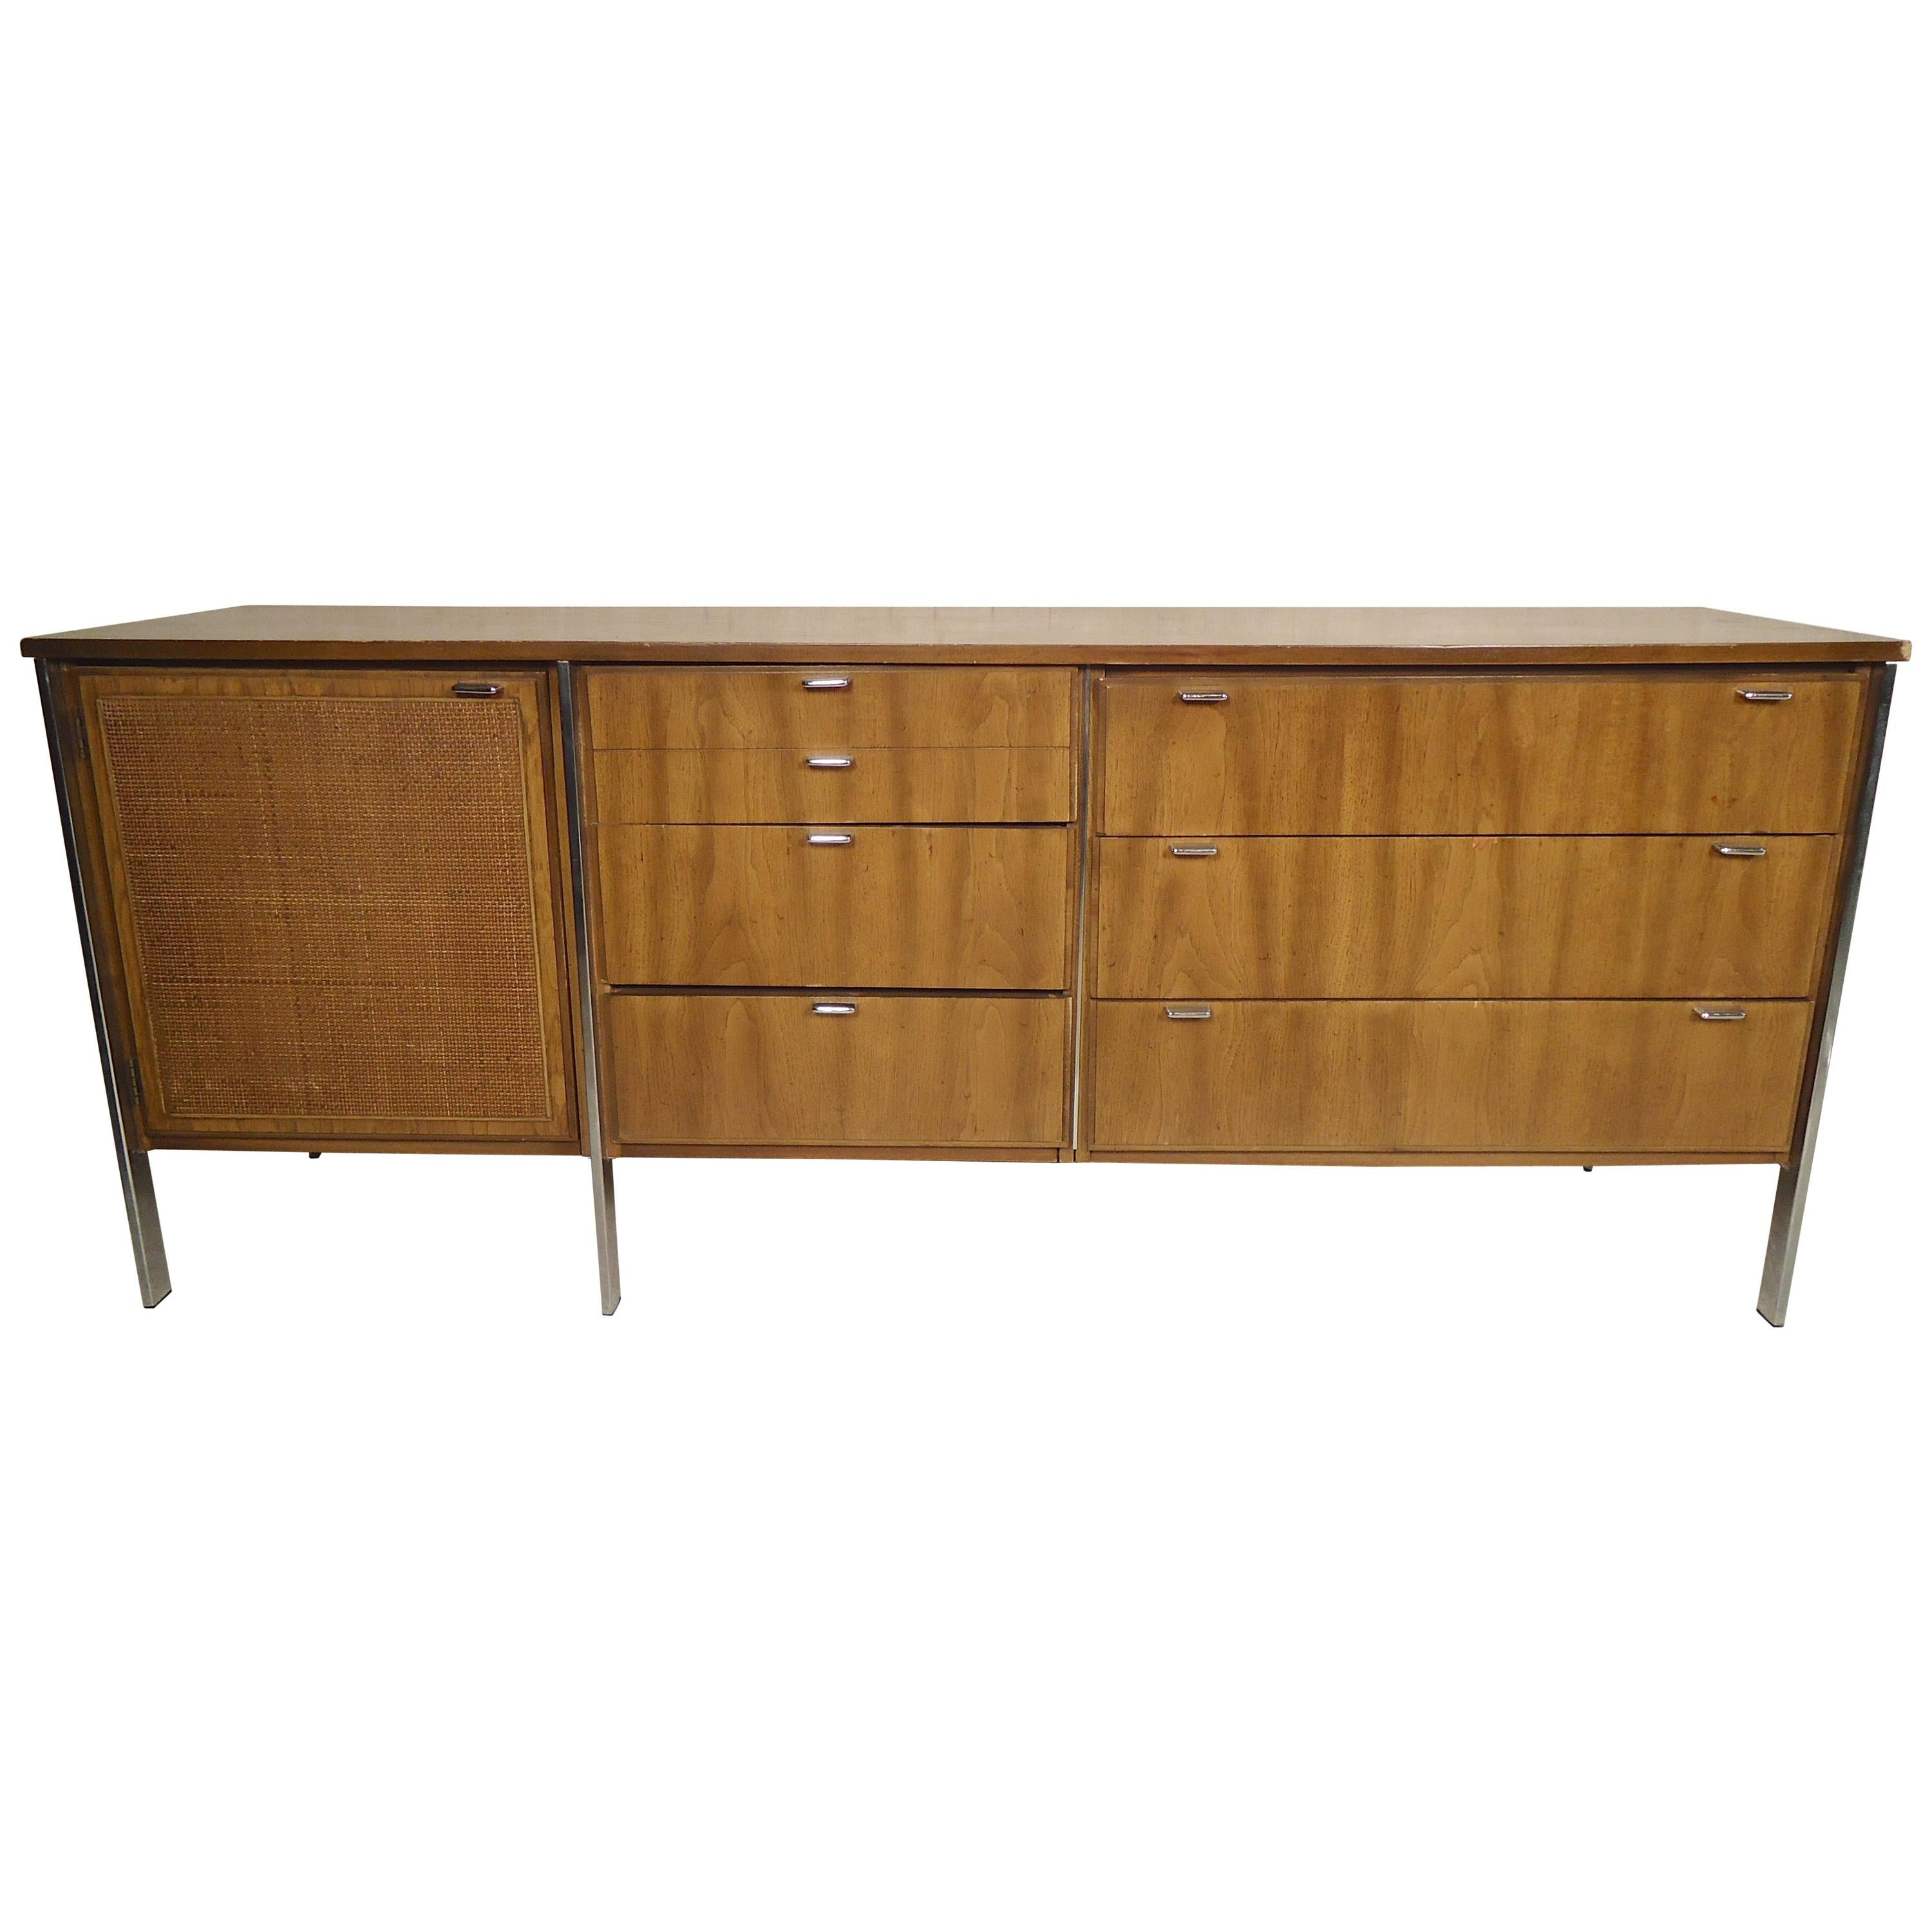 Midcentury Knoll Style Credenza